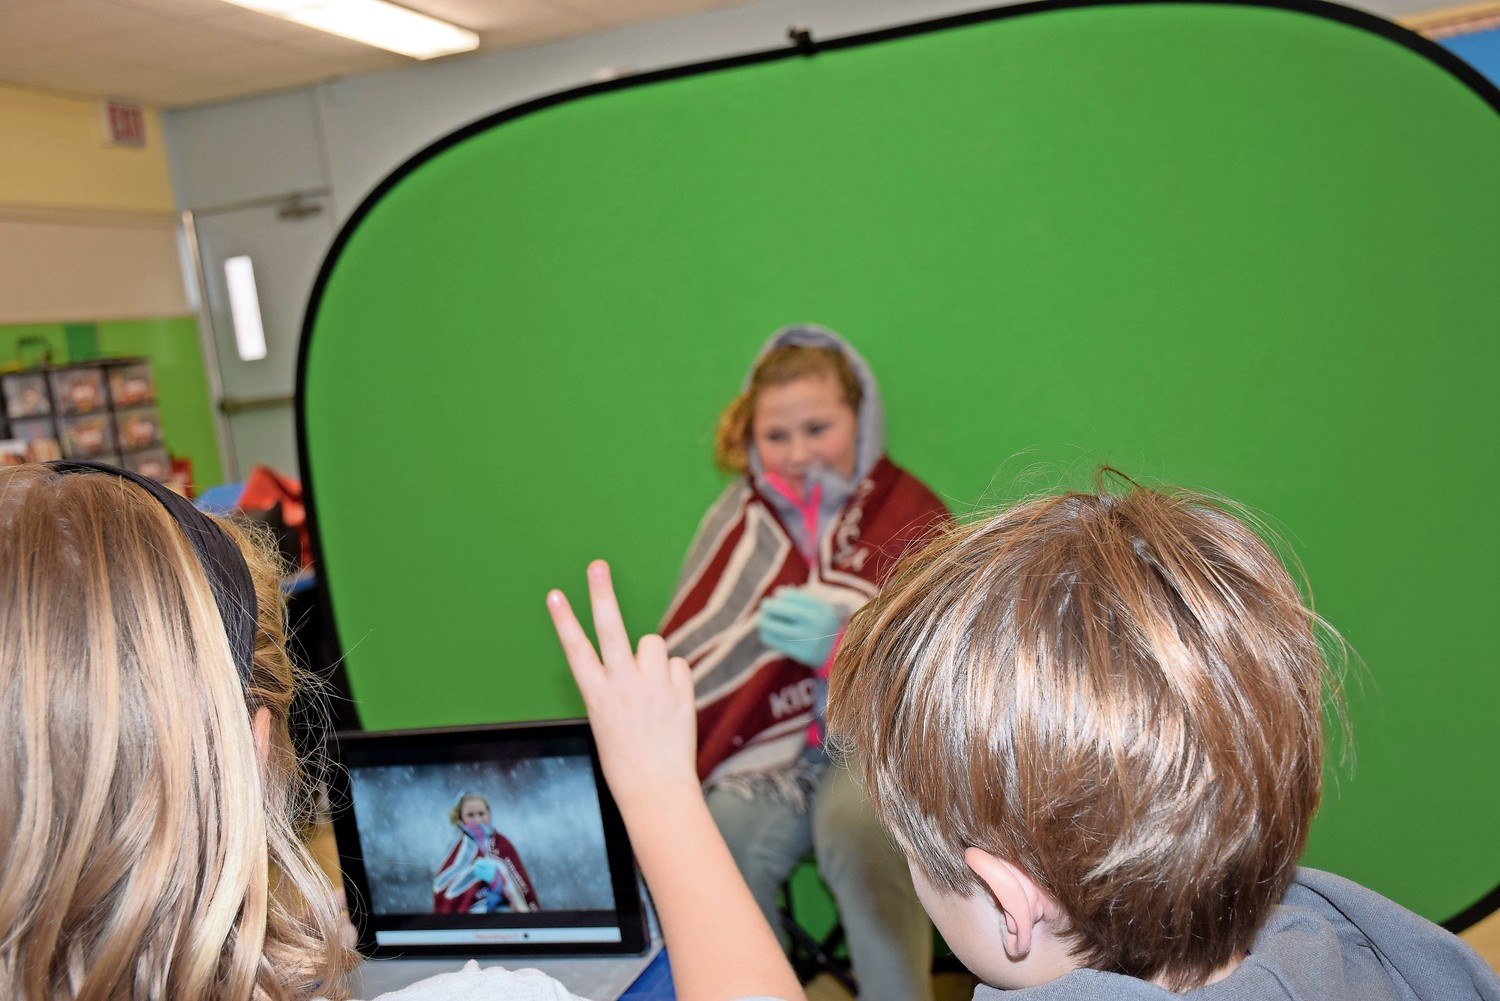 Weather station director Elizabeth Kirchner and anchor Owen Stachlik, directed meteorologist field reporter Jamielynn Korotke in the filming of a weather report at Forest Lake Elementary School.